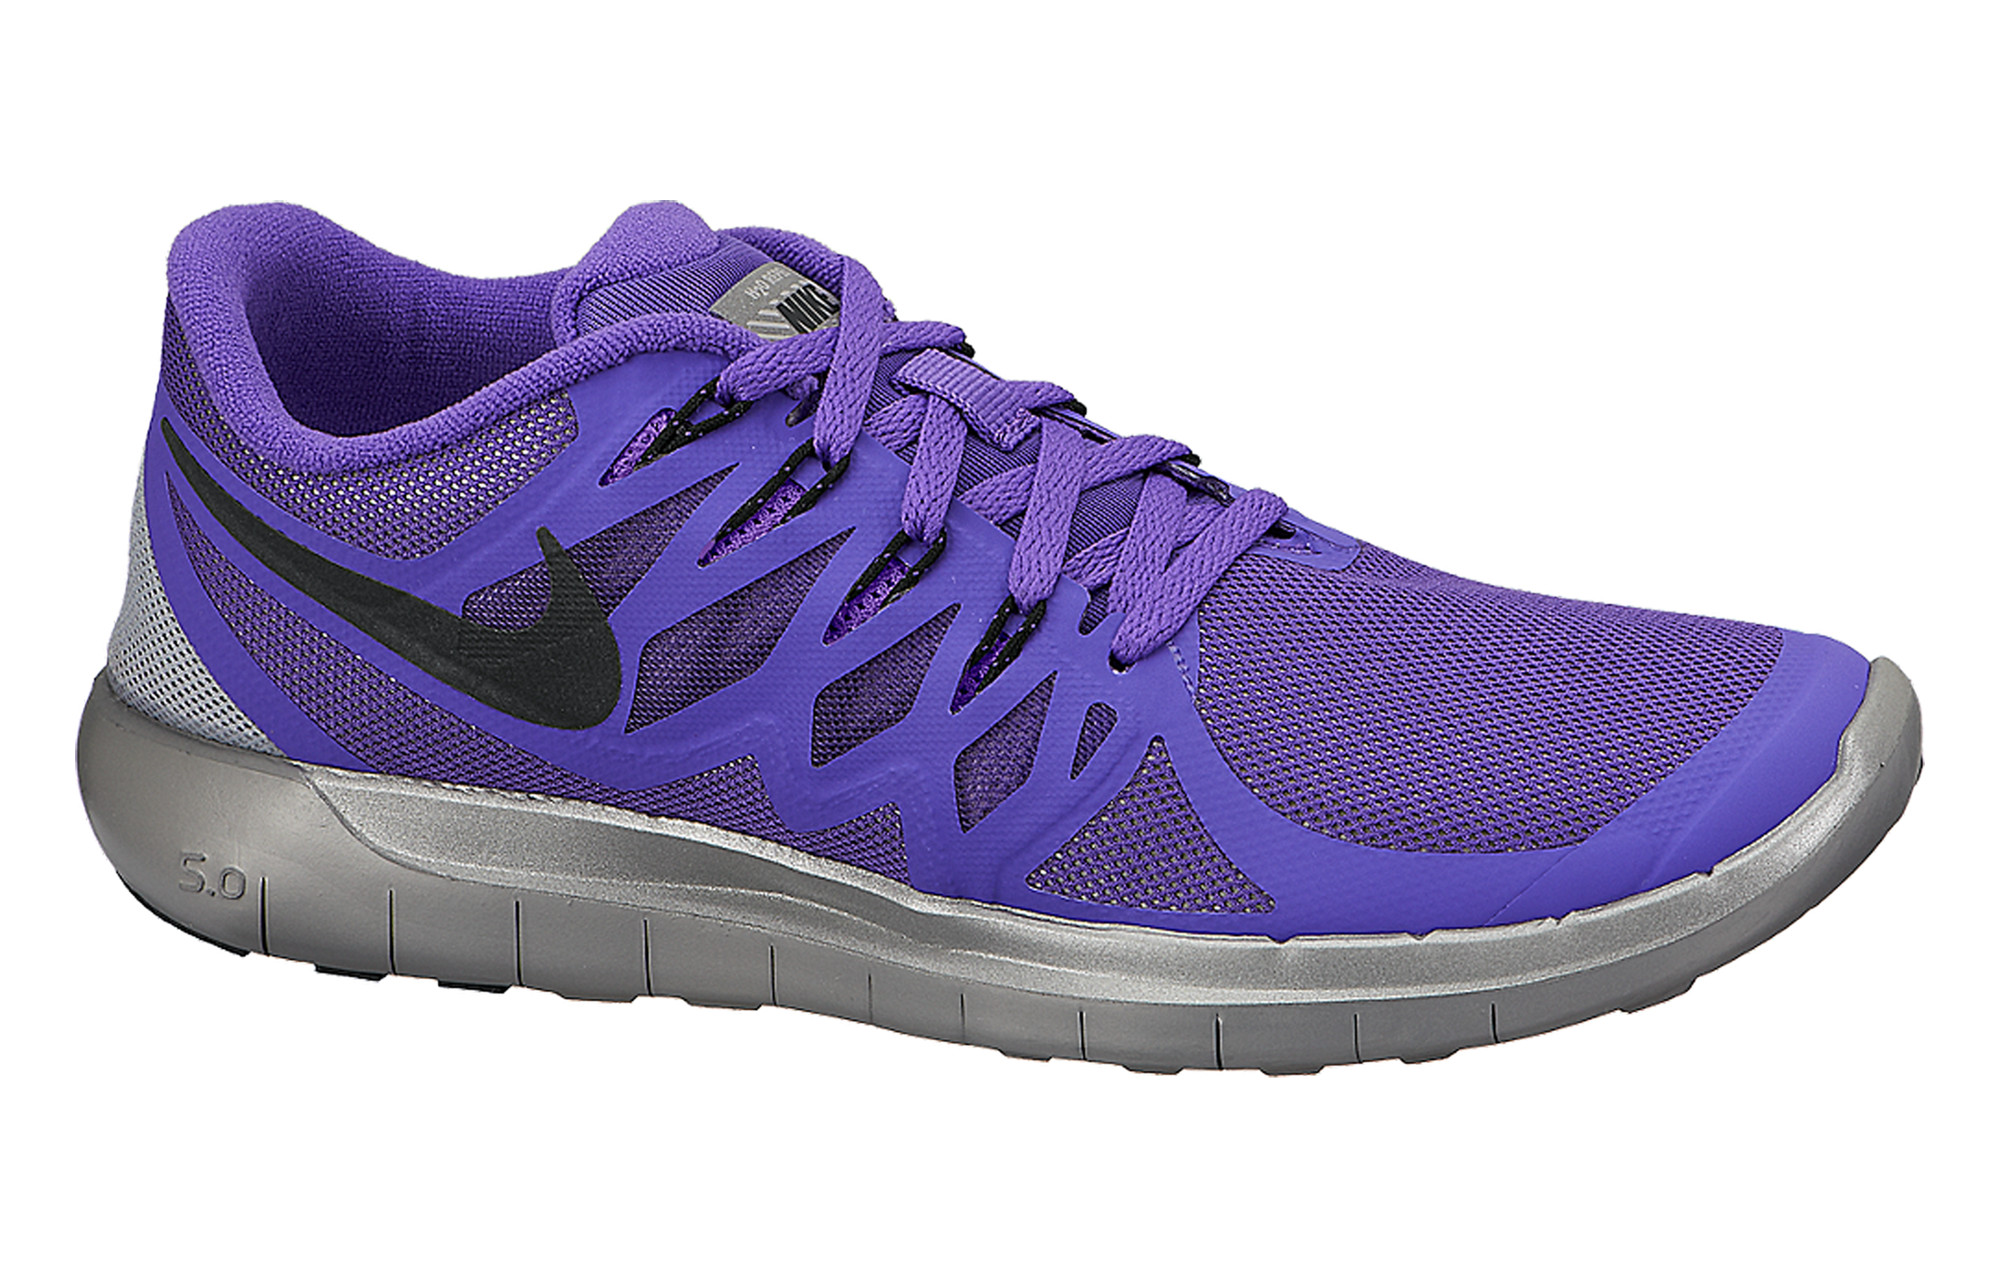 finest selection 8c286 832b7 Chaussures de Running Femme Nike FREE 5.0 FLASH Violet